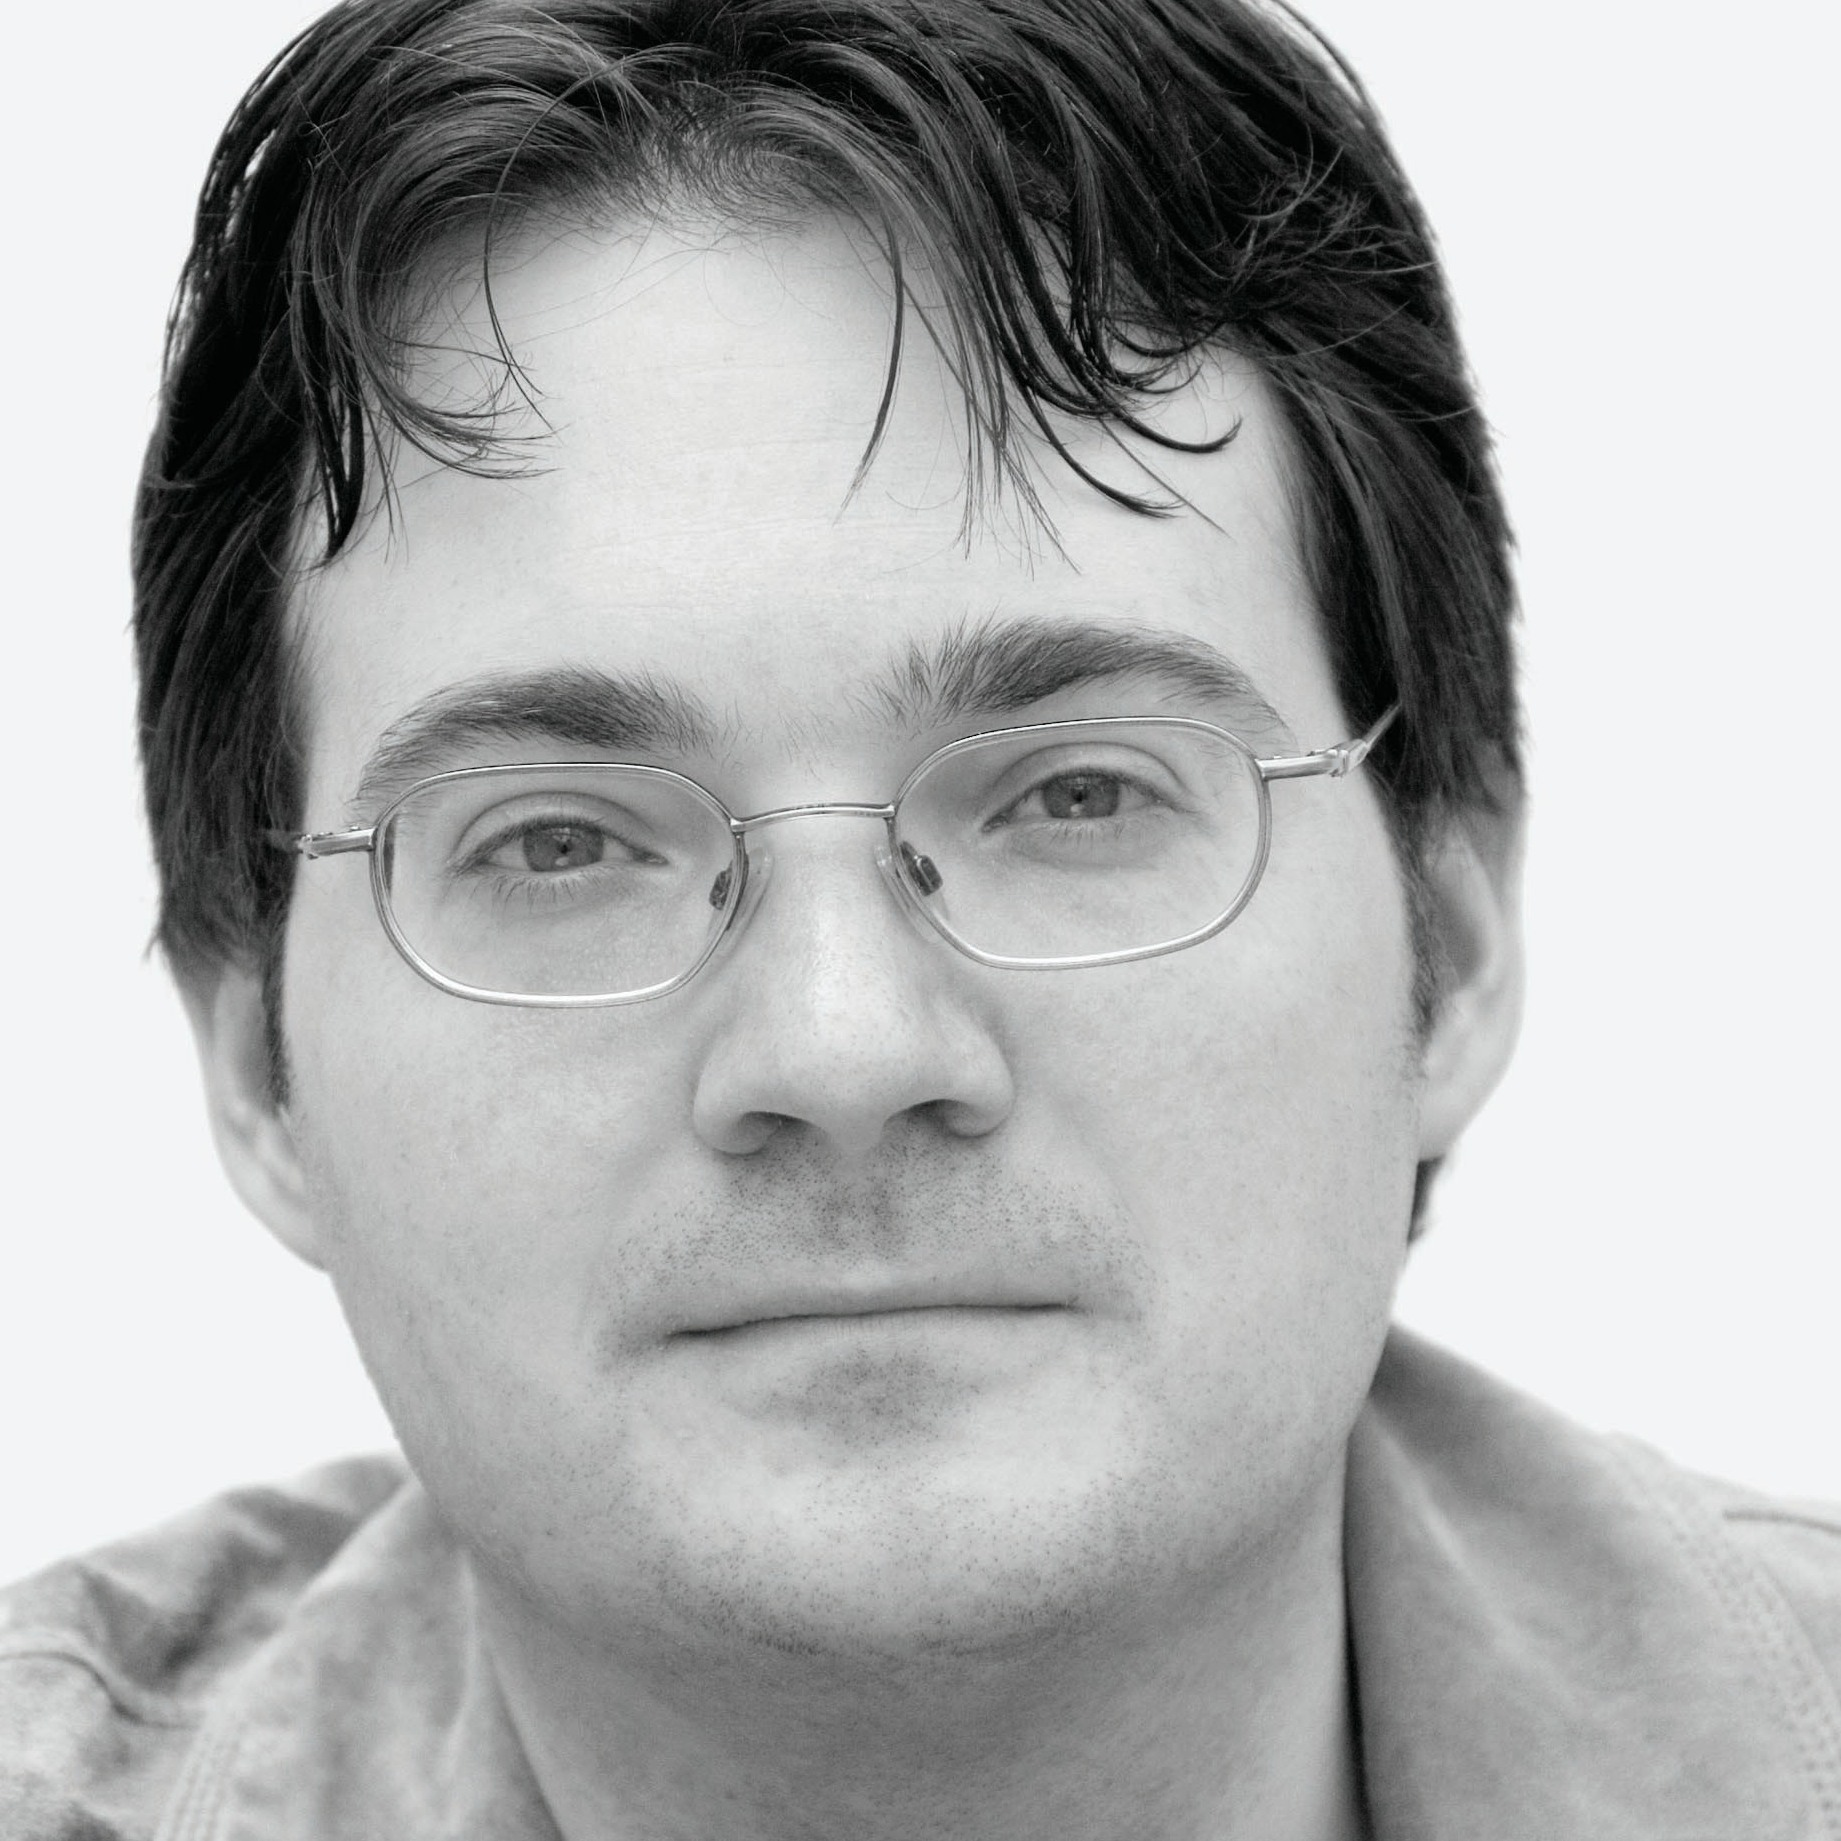 Brandon Sanderson is the author of the Mistborn books.  He was chosen to complete the Wheel of Time series after Robert Jordan's death.